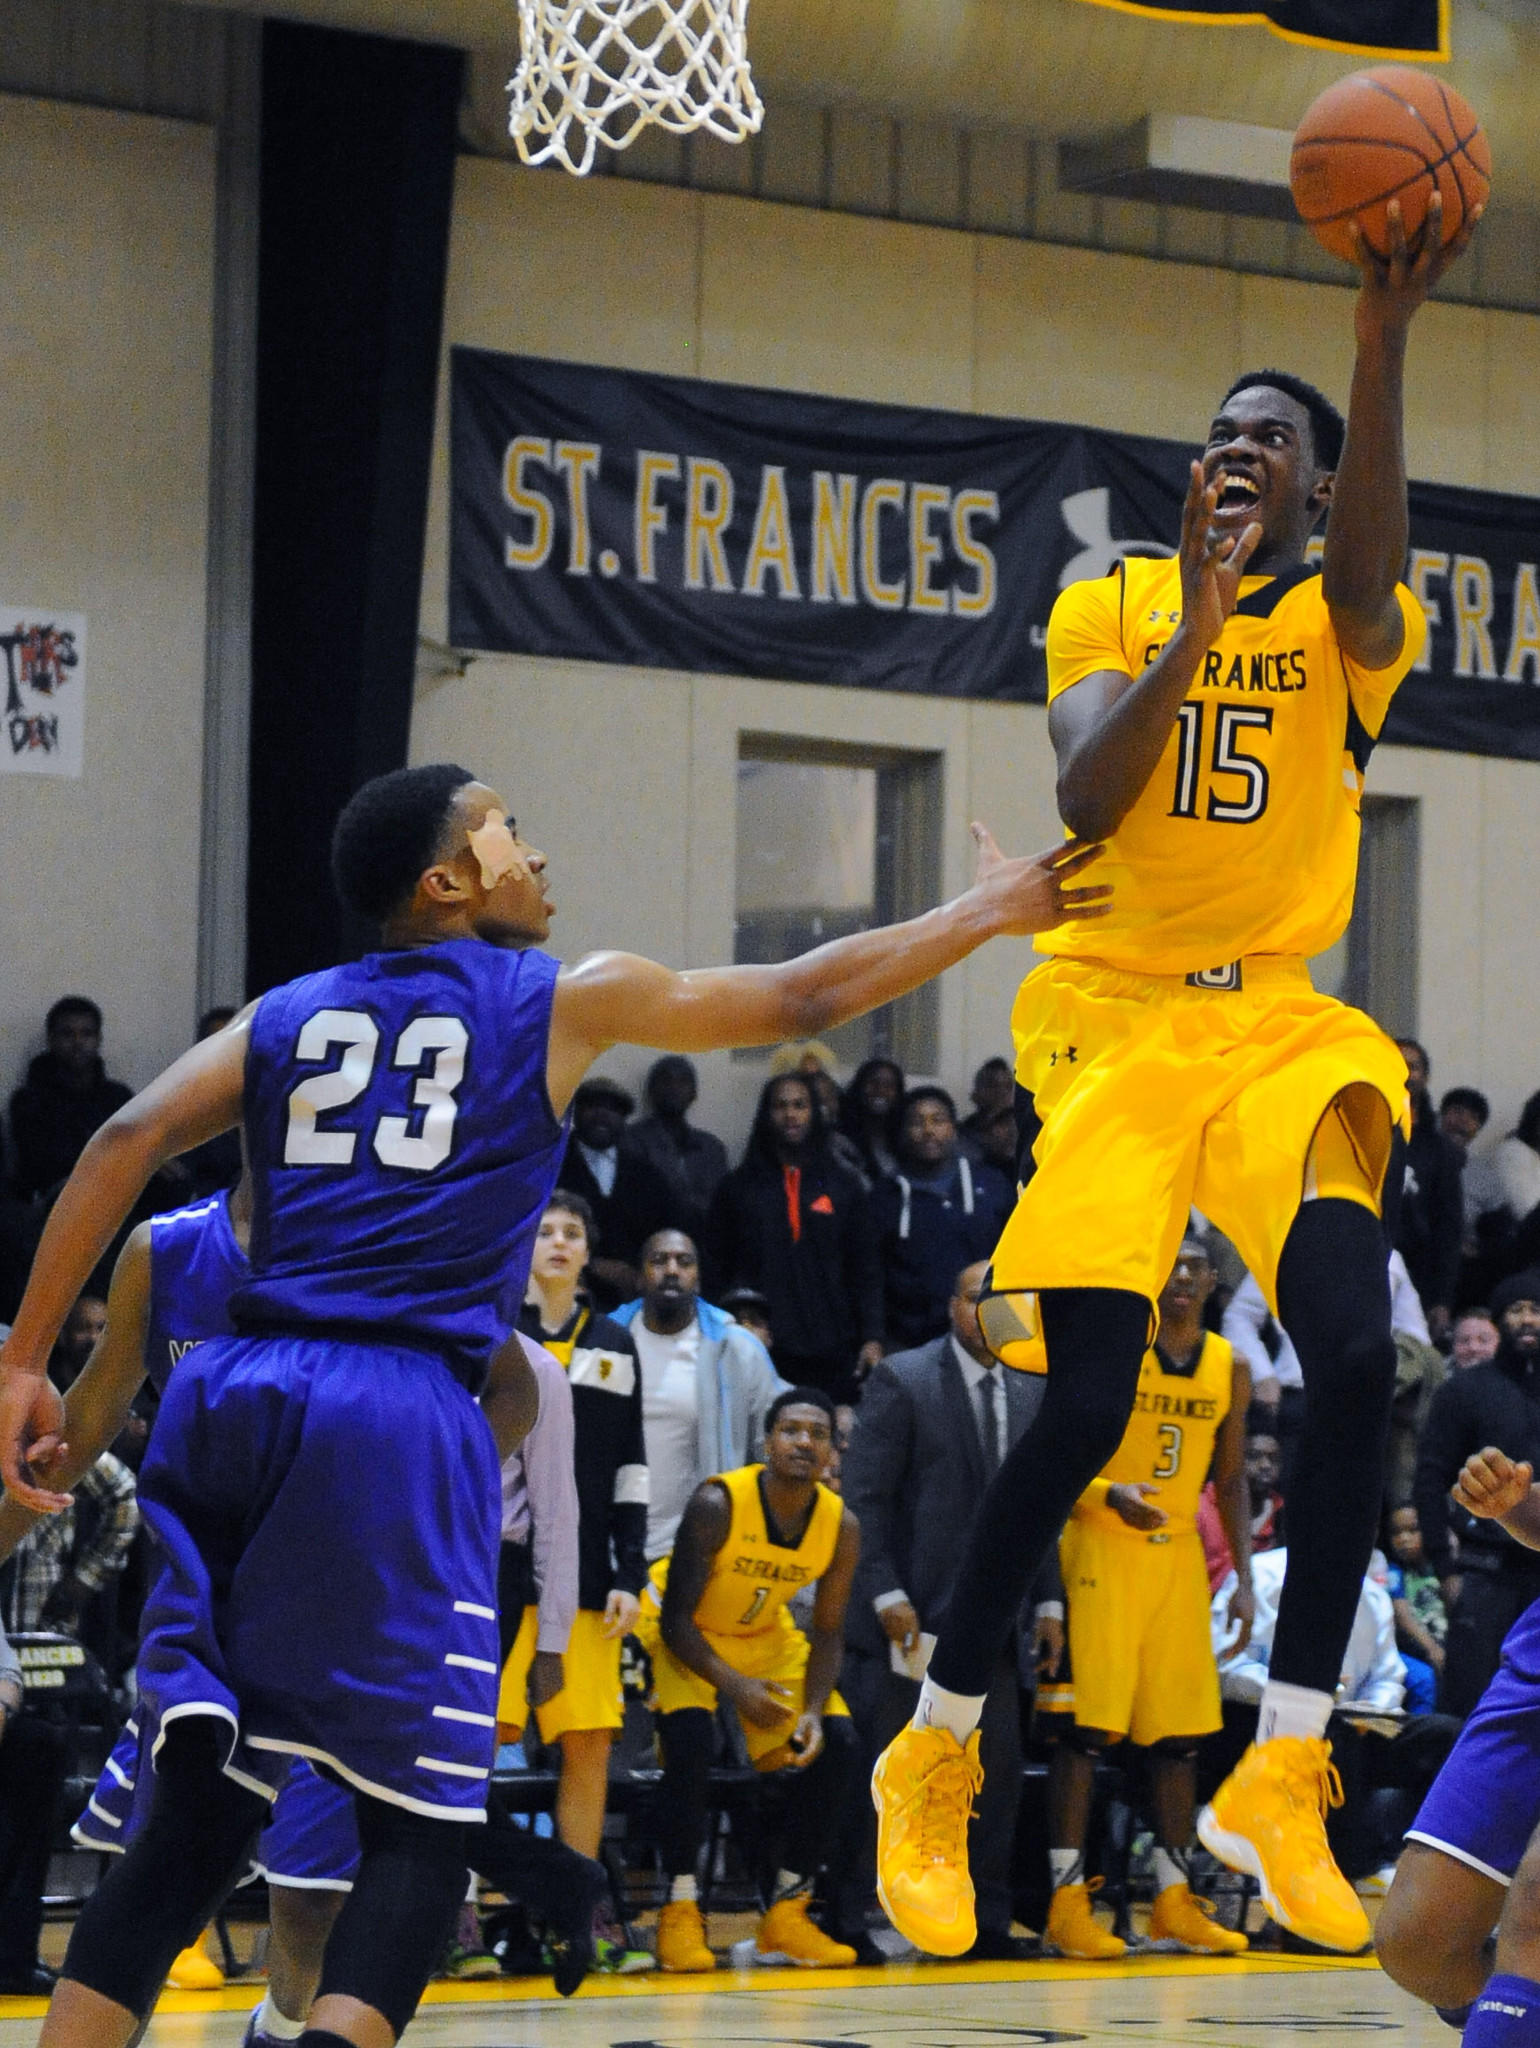 St. Frances' Dwayne Morgan, right, shoots over Mount St. Joe's Phil Booth, Jr., in the third quarter.